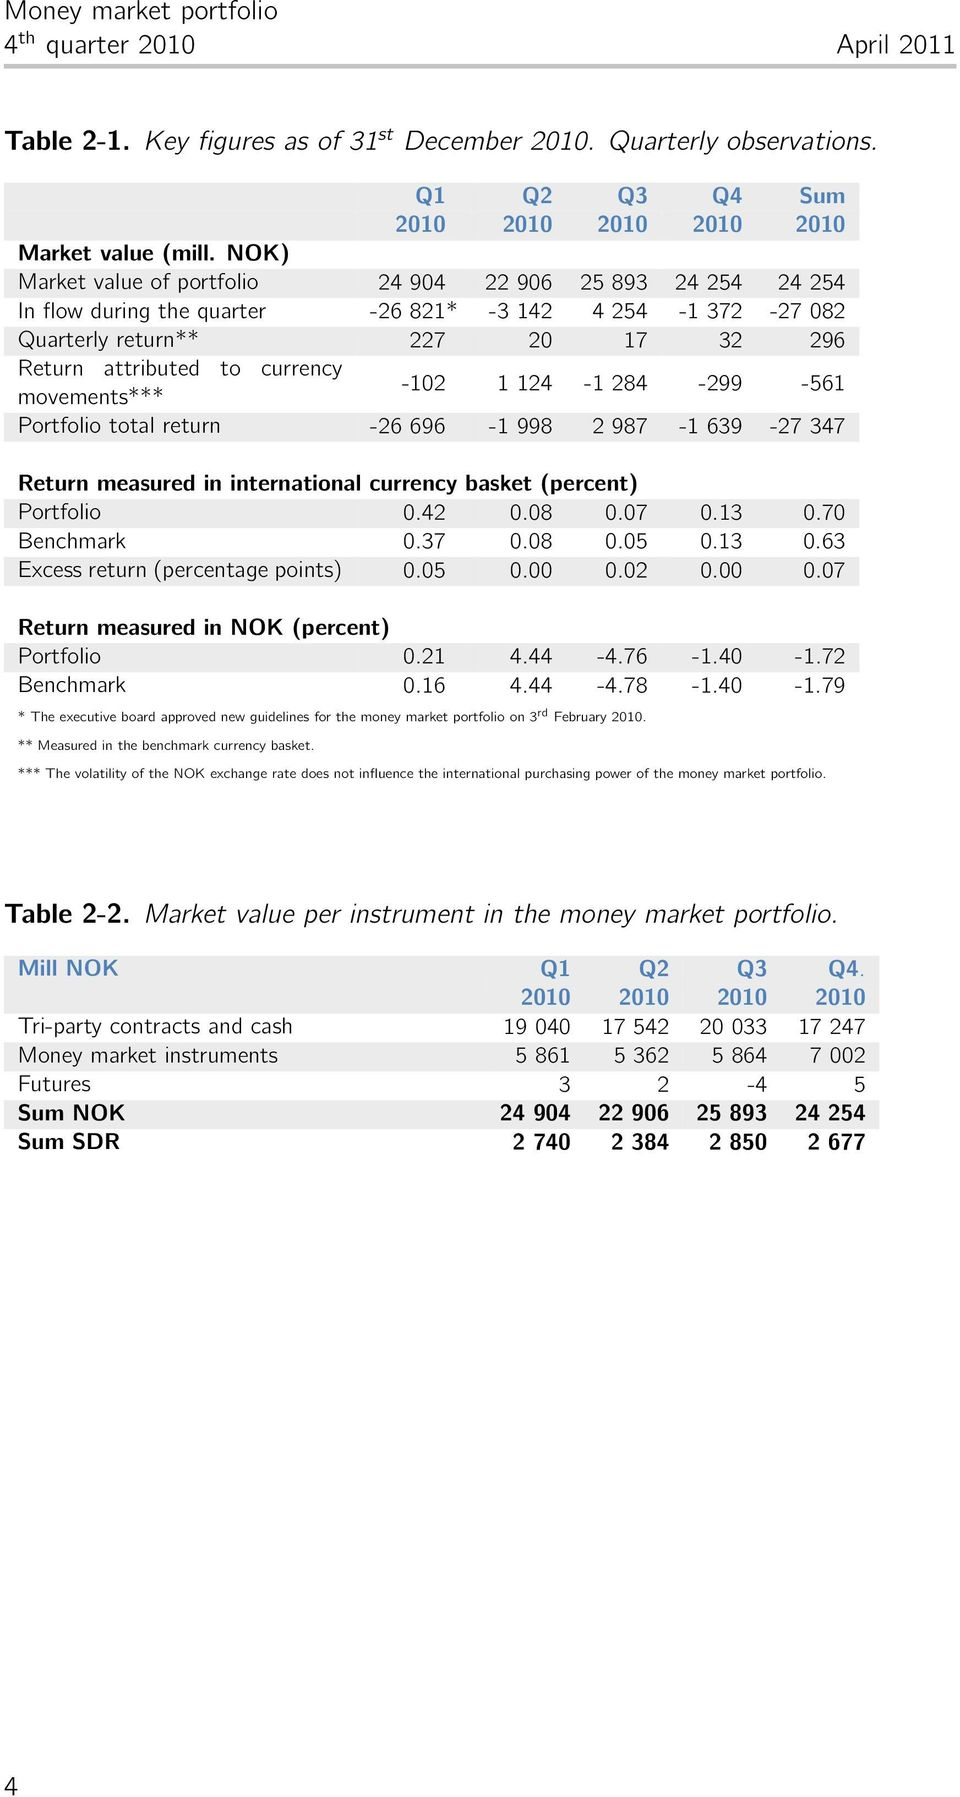 return - 9-1 998 987-1 39-7 37 Return measured in international currency basket (percent) Portfolio..8.7.13.7 Benchmark.37.8.5.13.3 Excess return (percentage points).5....7 Return measured in NOK (percent) Portfolio.